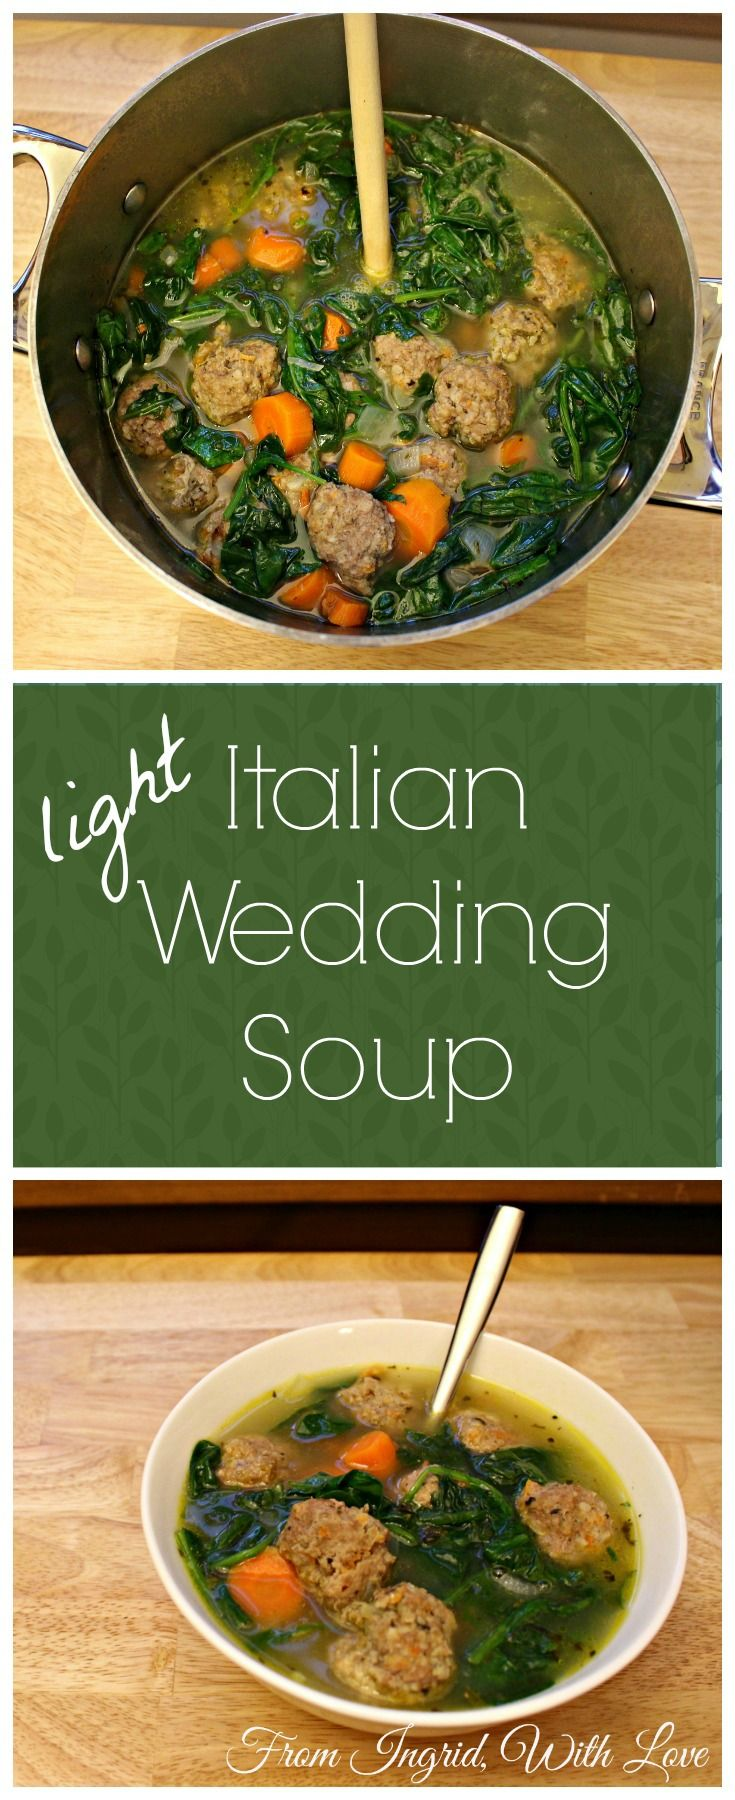 Italian Wedding Soup with turkey meatballs, carrots and spinach. A healthier, heartier version of an old favorite!